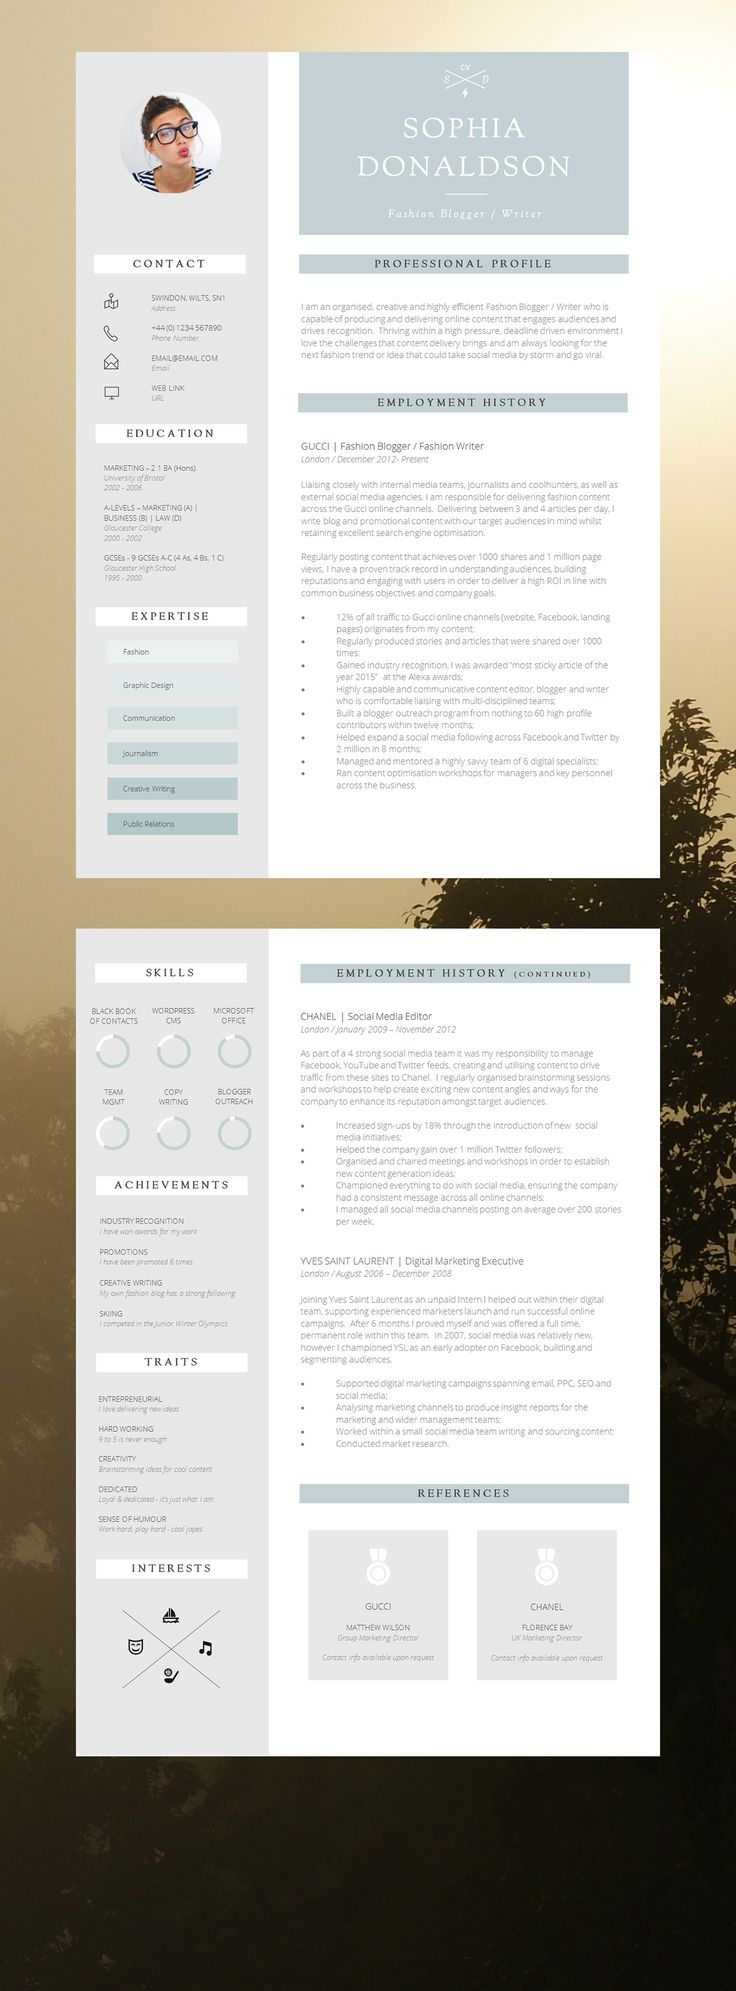 a resume guide and cv template rolled up into one handy download - Excellent Resume Templates